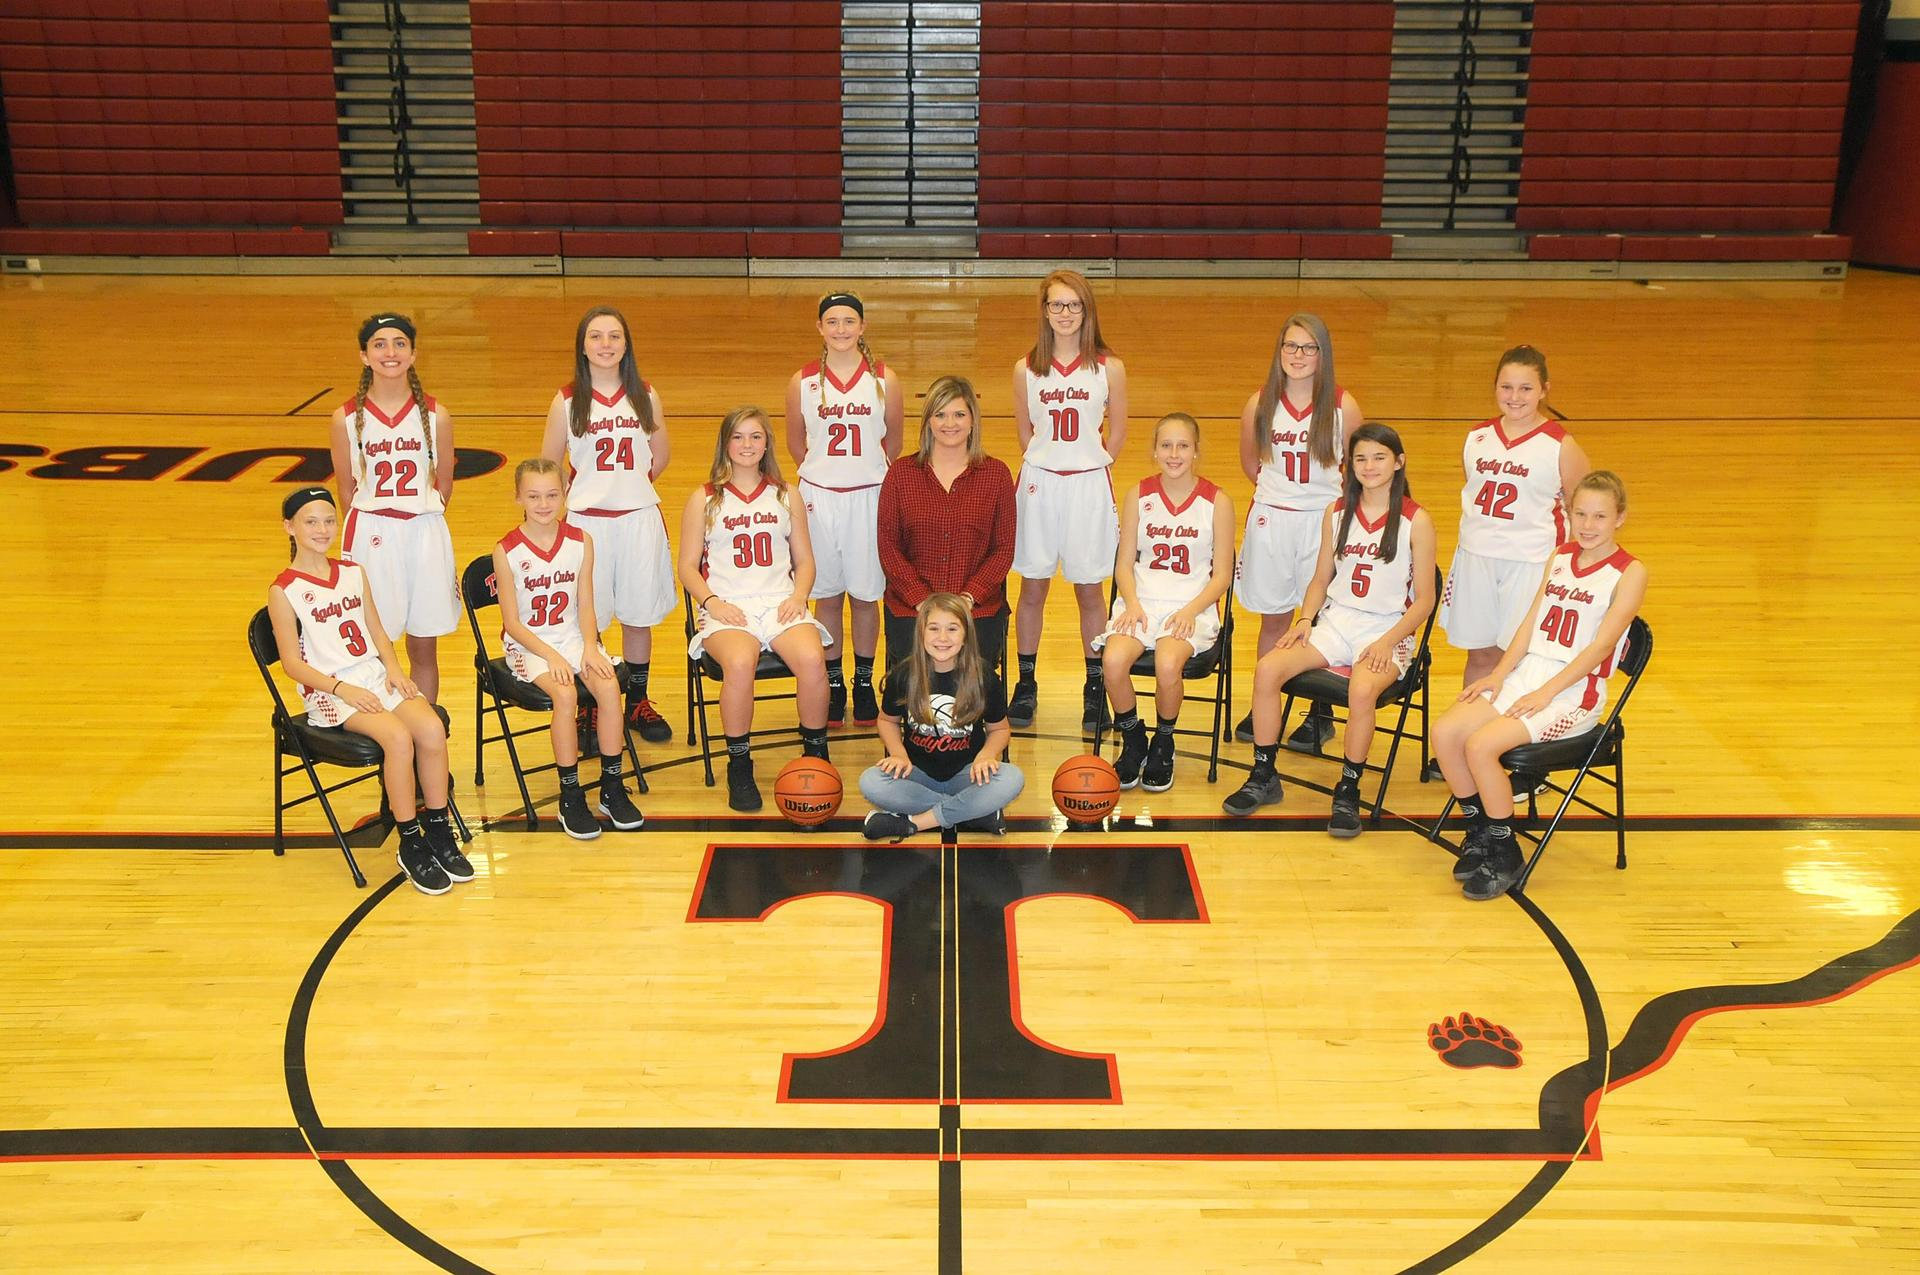 TPJHS LADY CUBS